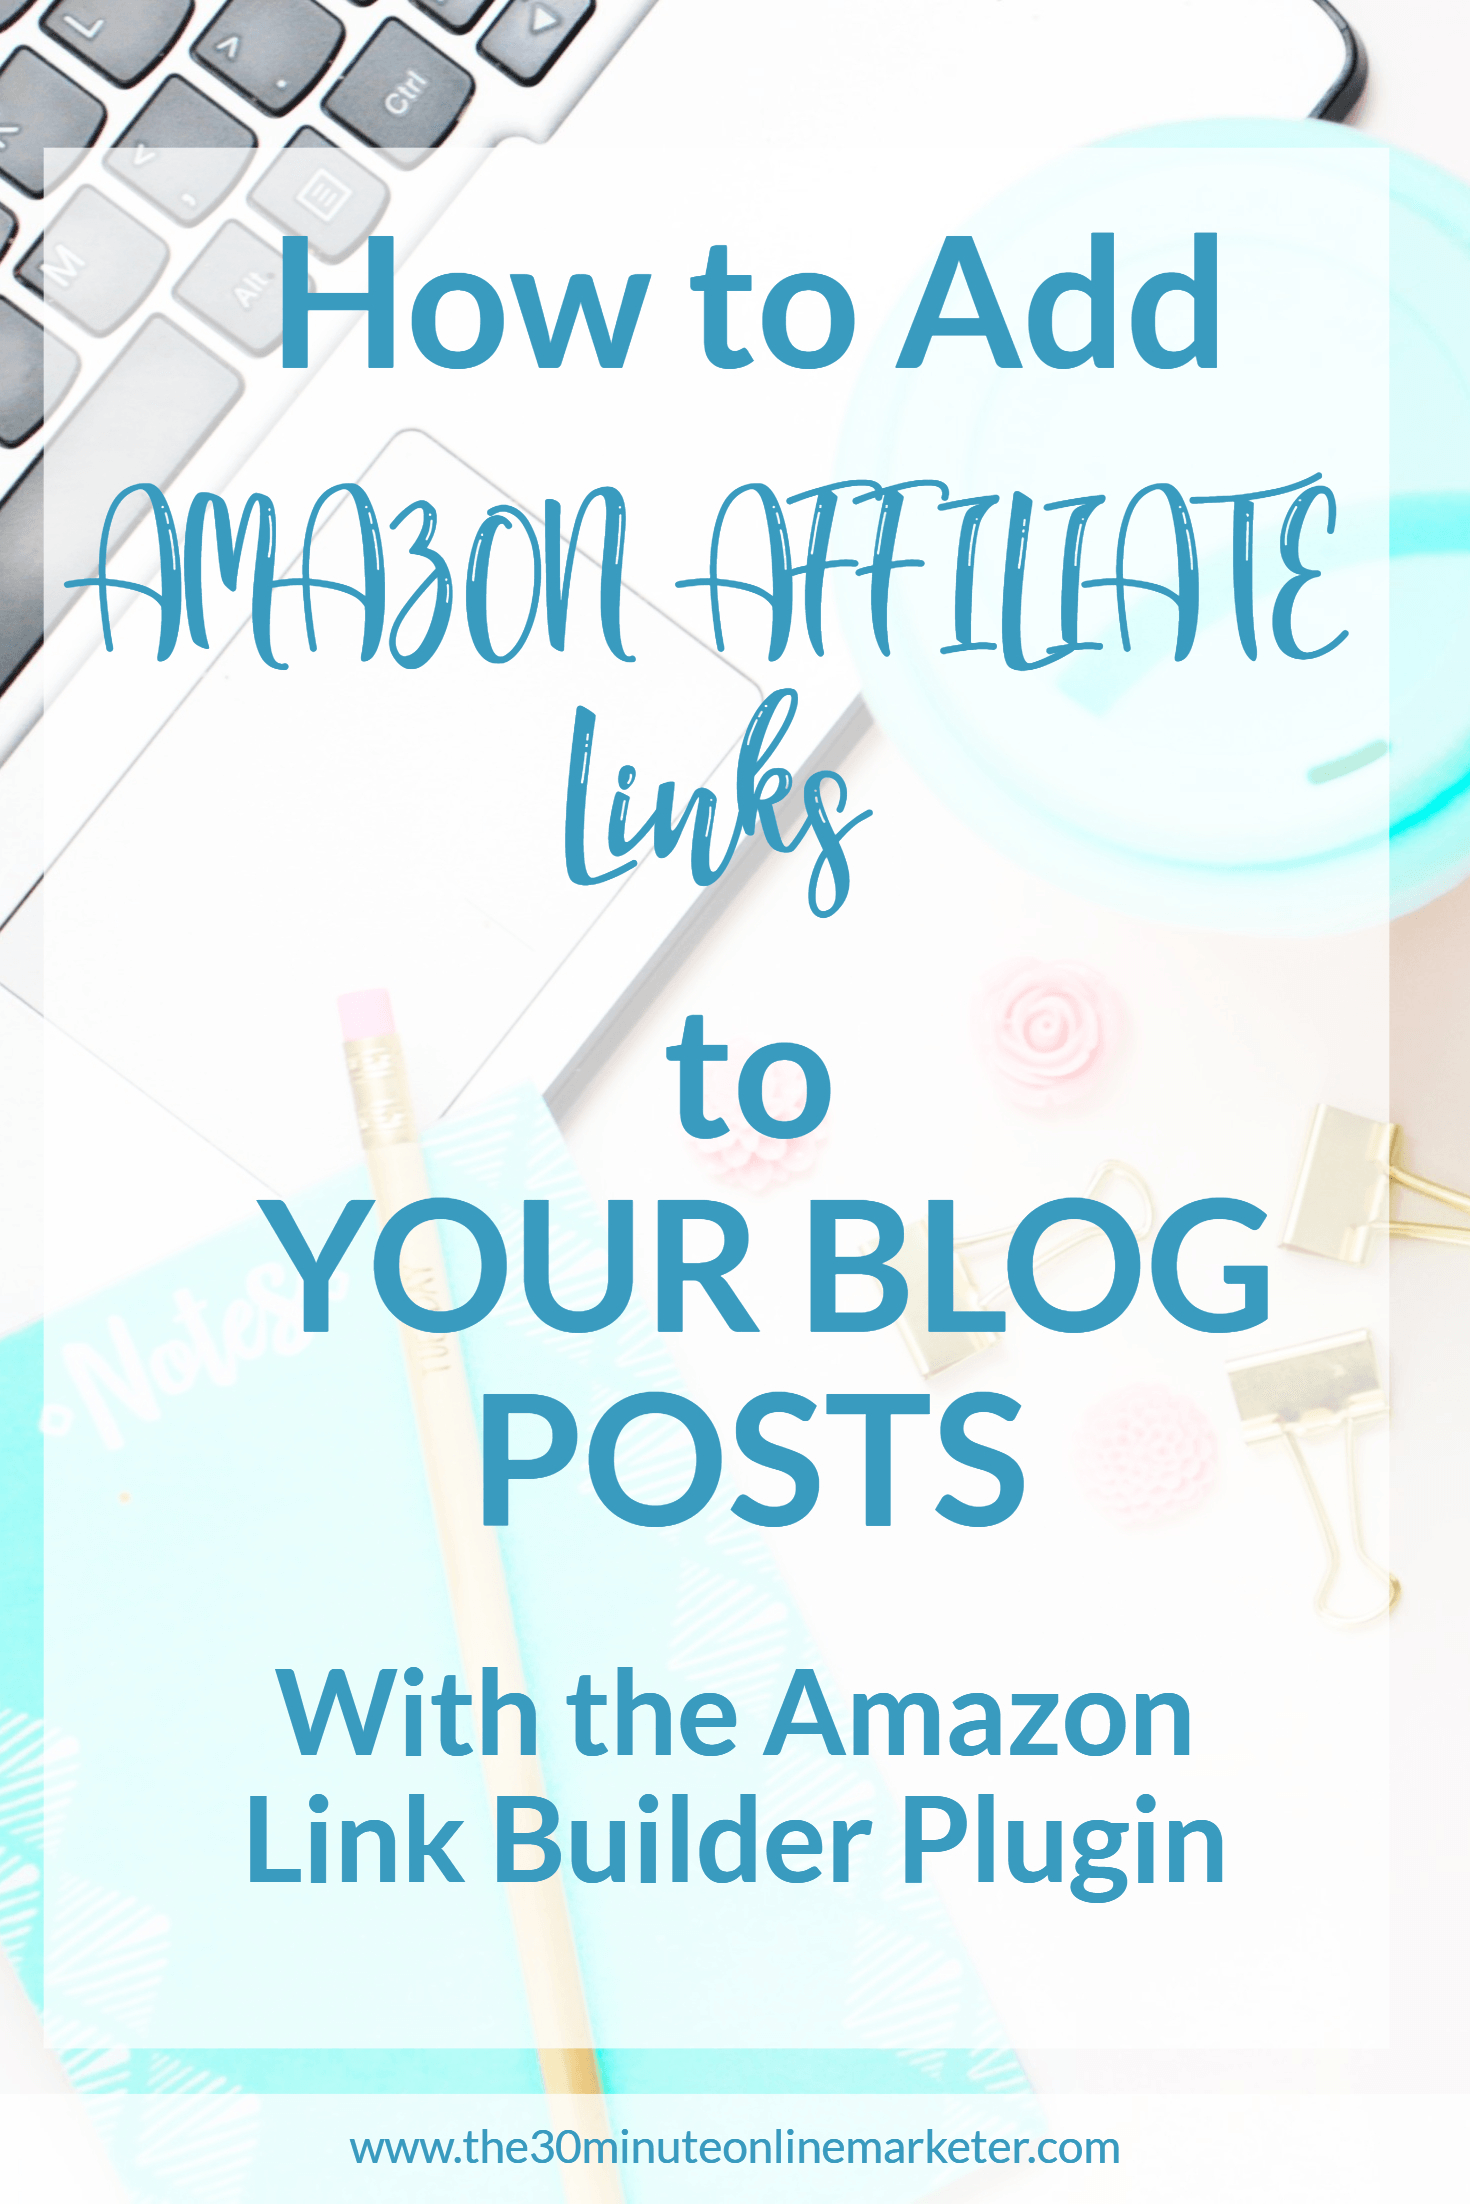 How to add Amazon affiliate links to your blog posts with the Amazon Link Builder Plugin